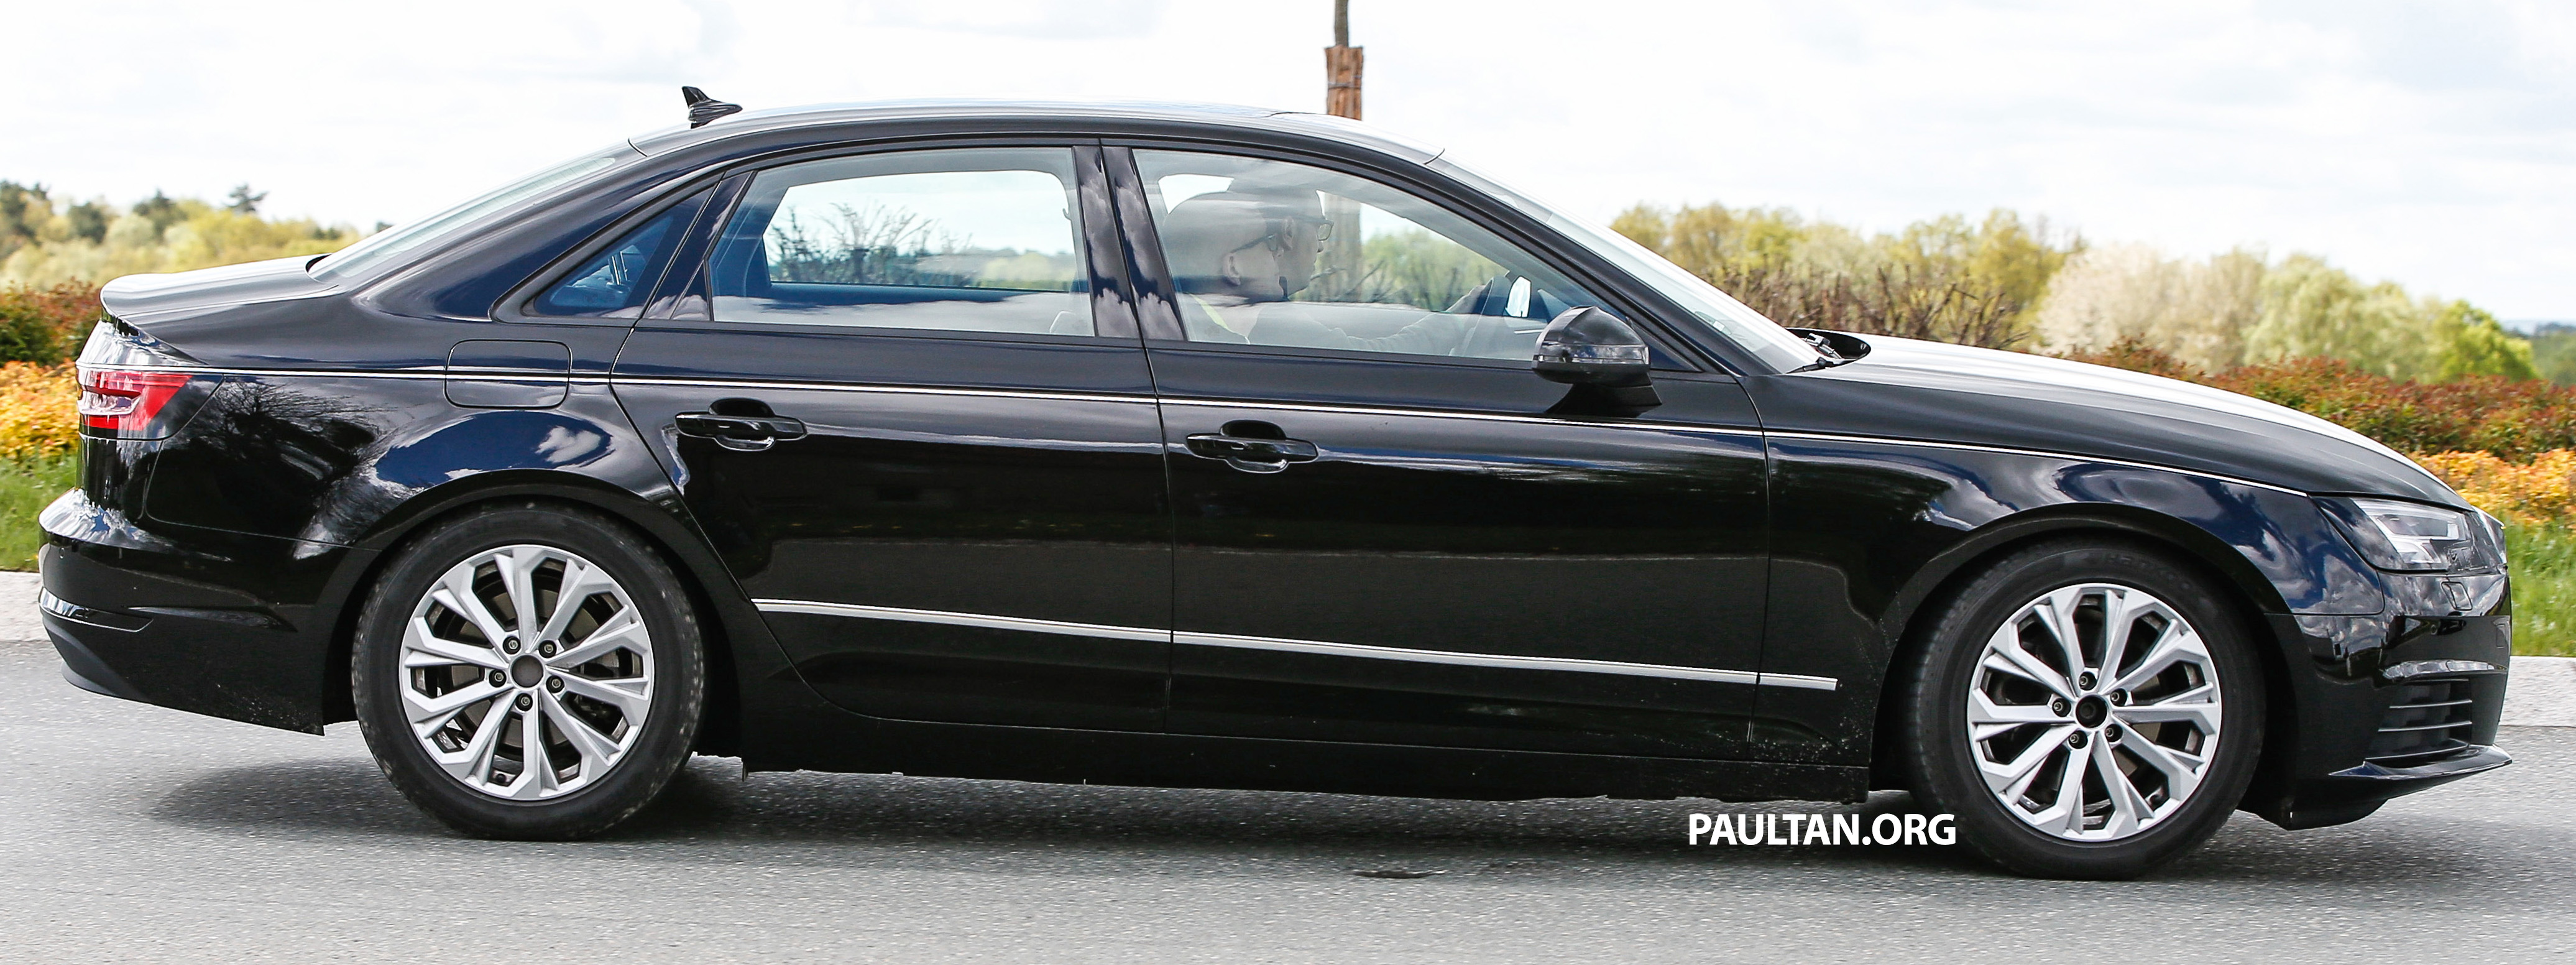 Spyshots B9 Audi A4 Caught Without Camouflage Paul Tan